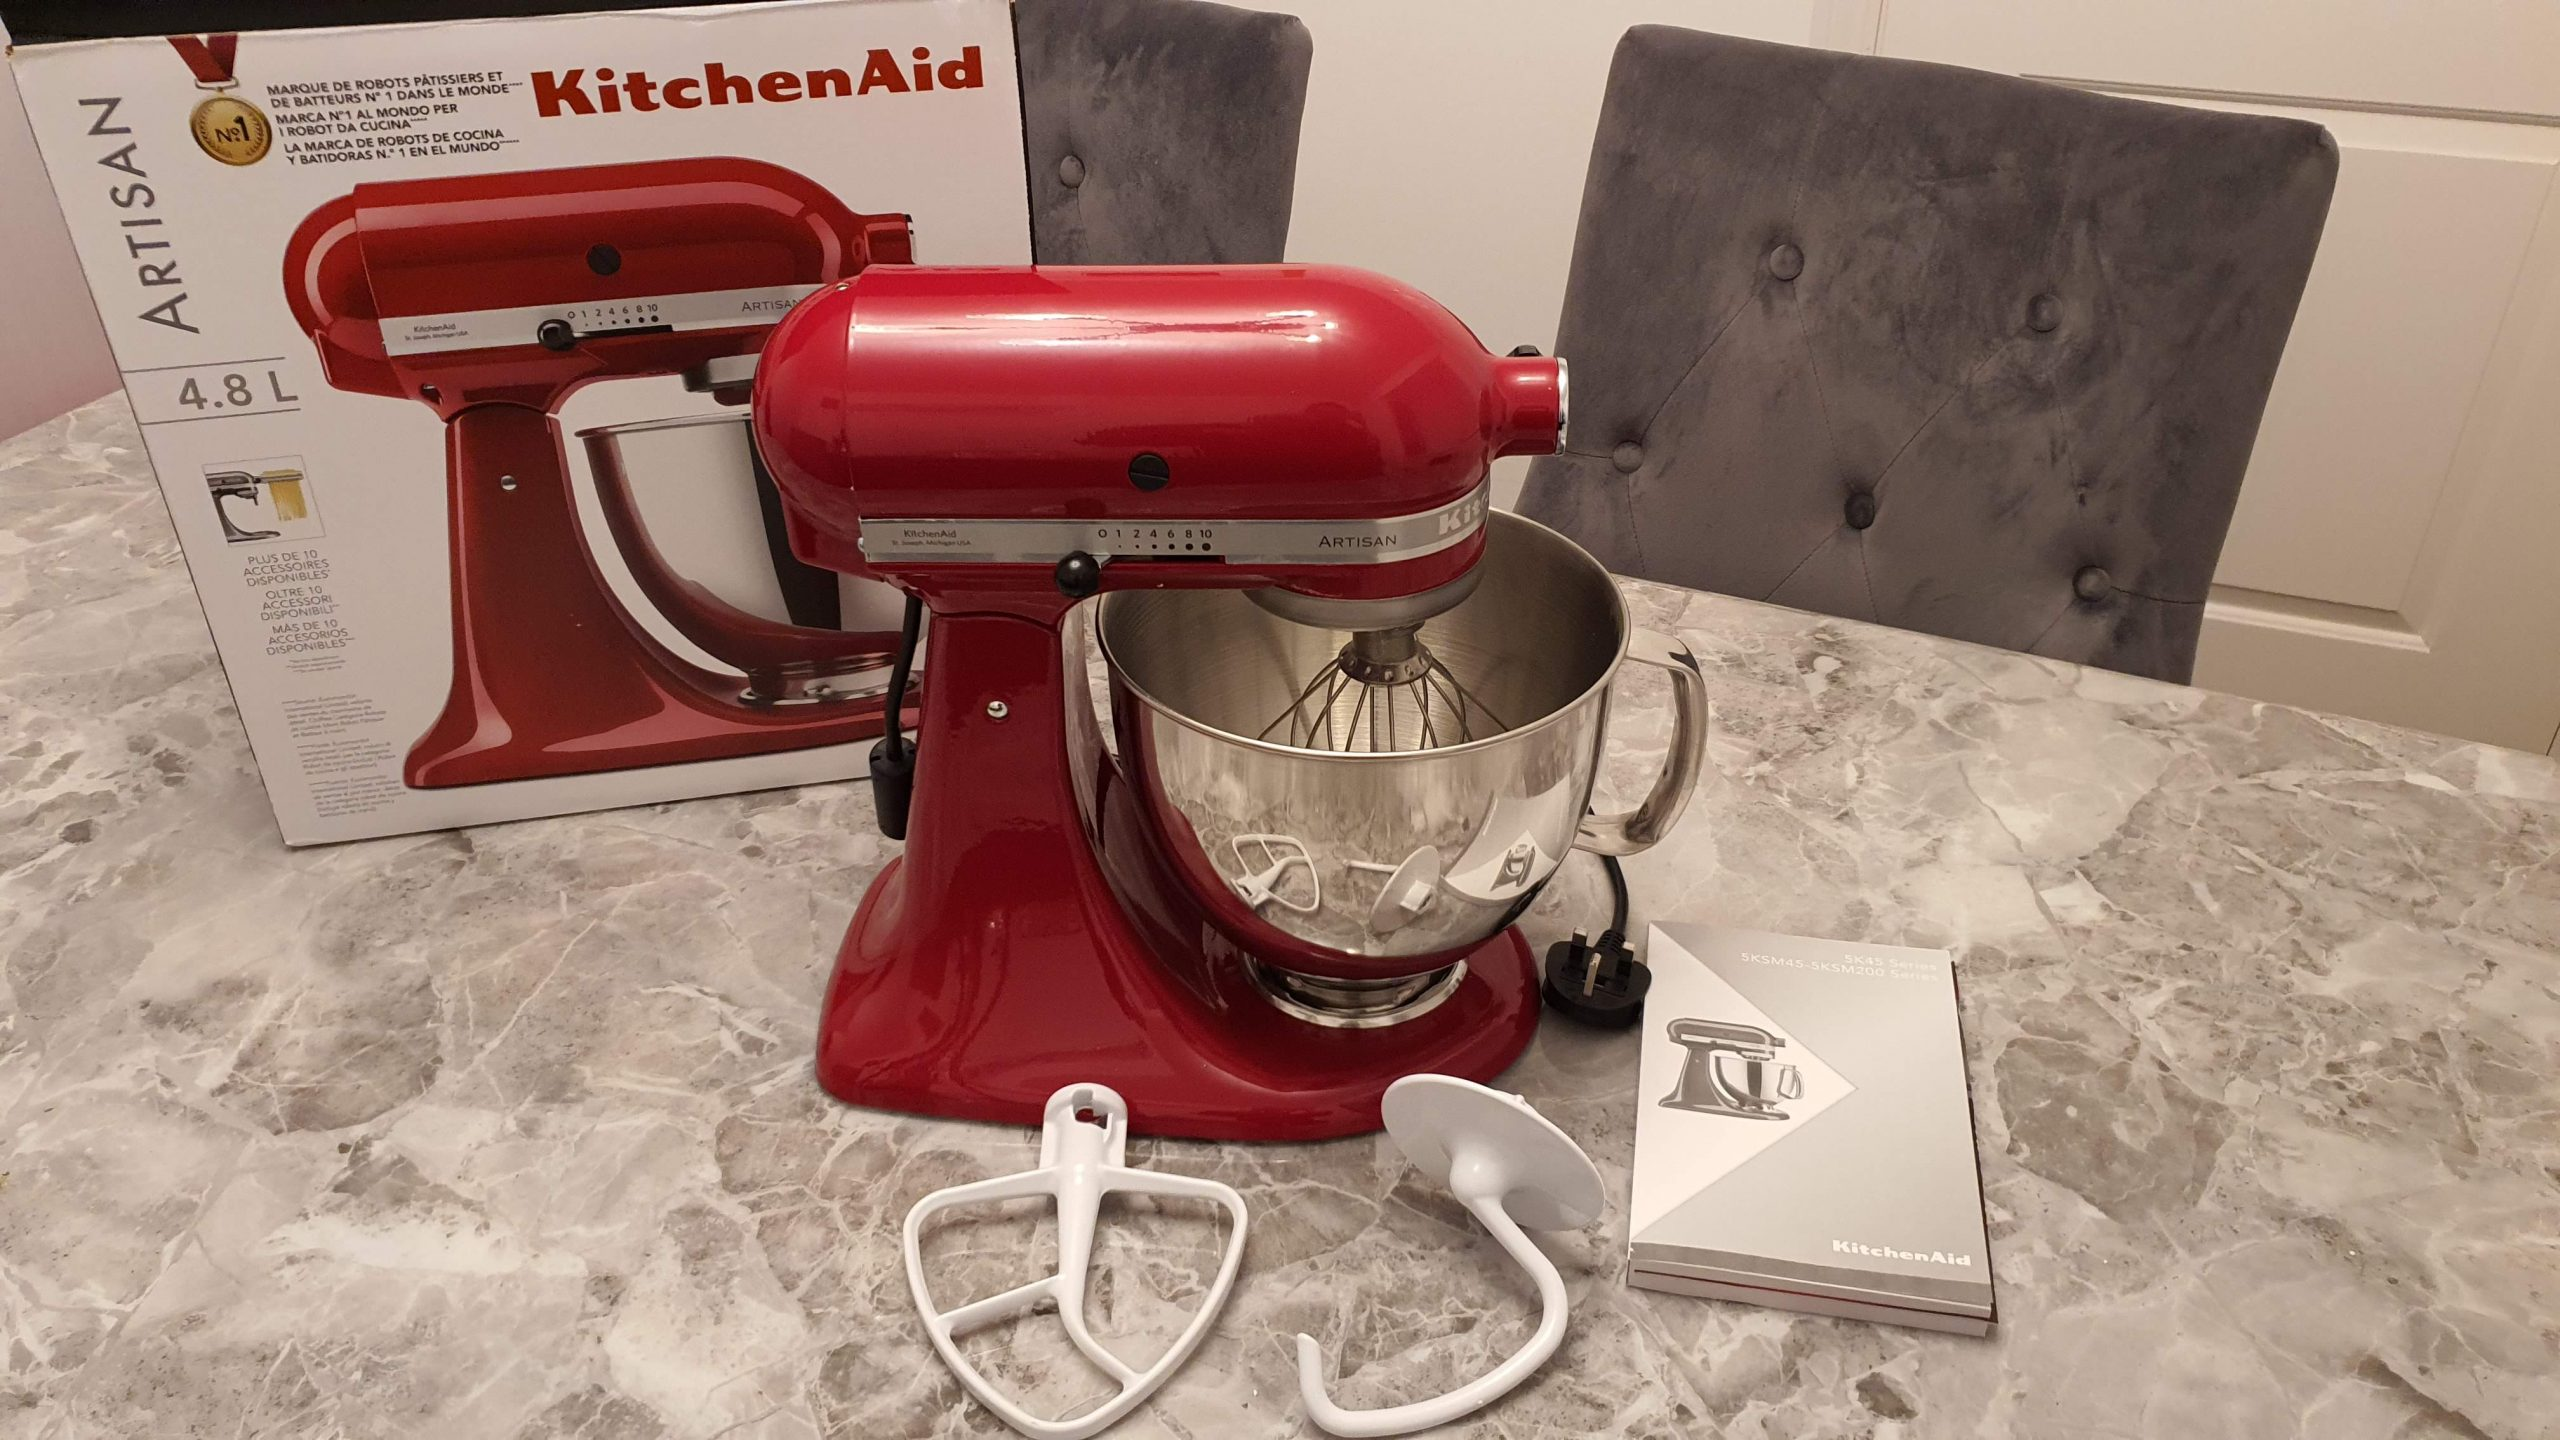 KithenAid Artisan 5KSM125 Mixer Tilt-Head 4.8L